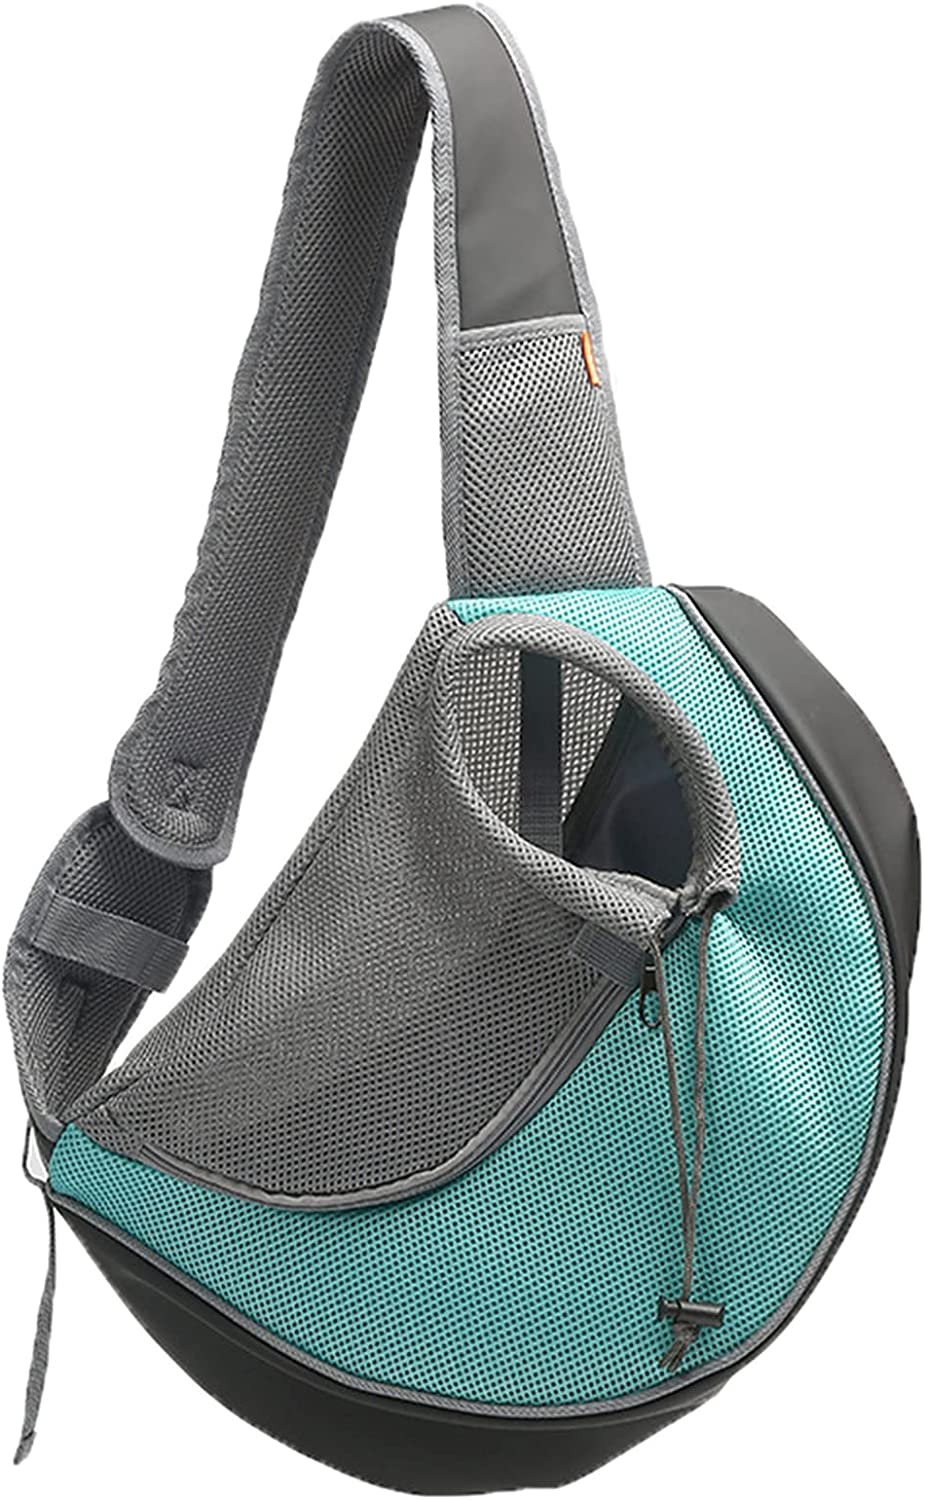 SZ-LY Pet Backpack Cat and Max Selling 52% OFF Dog Messenger Portable One-Shoul Bag